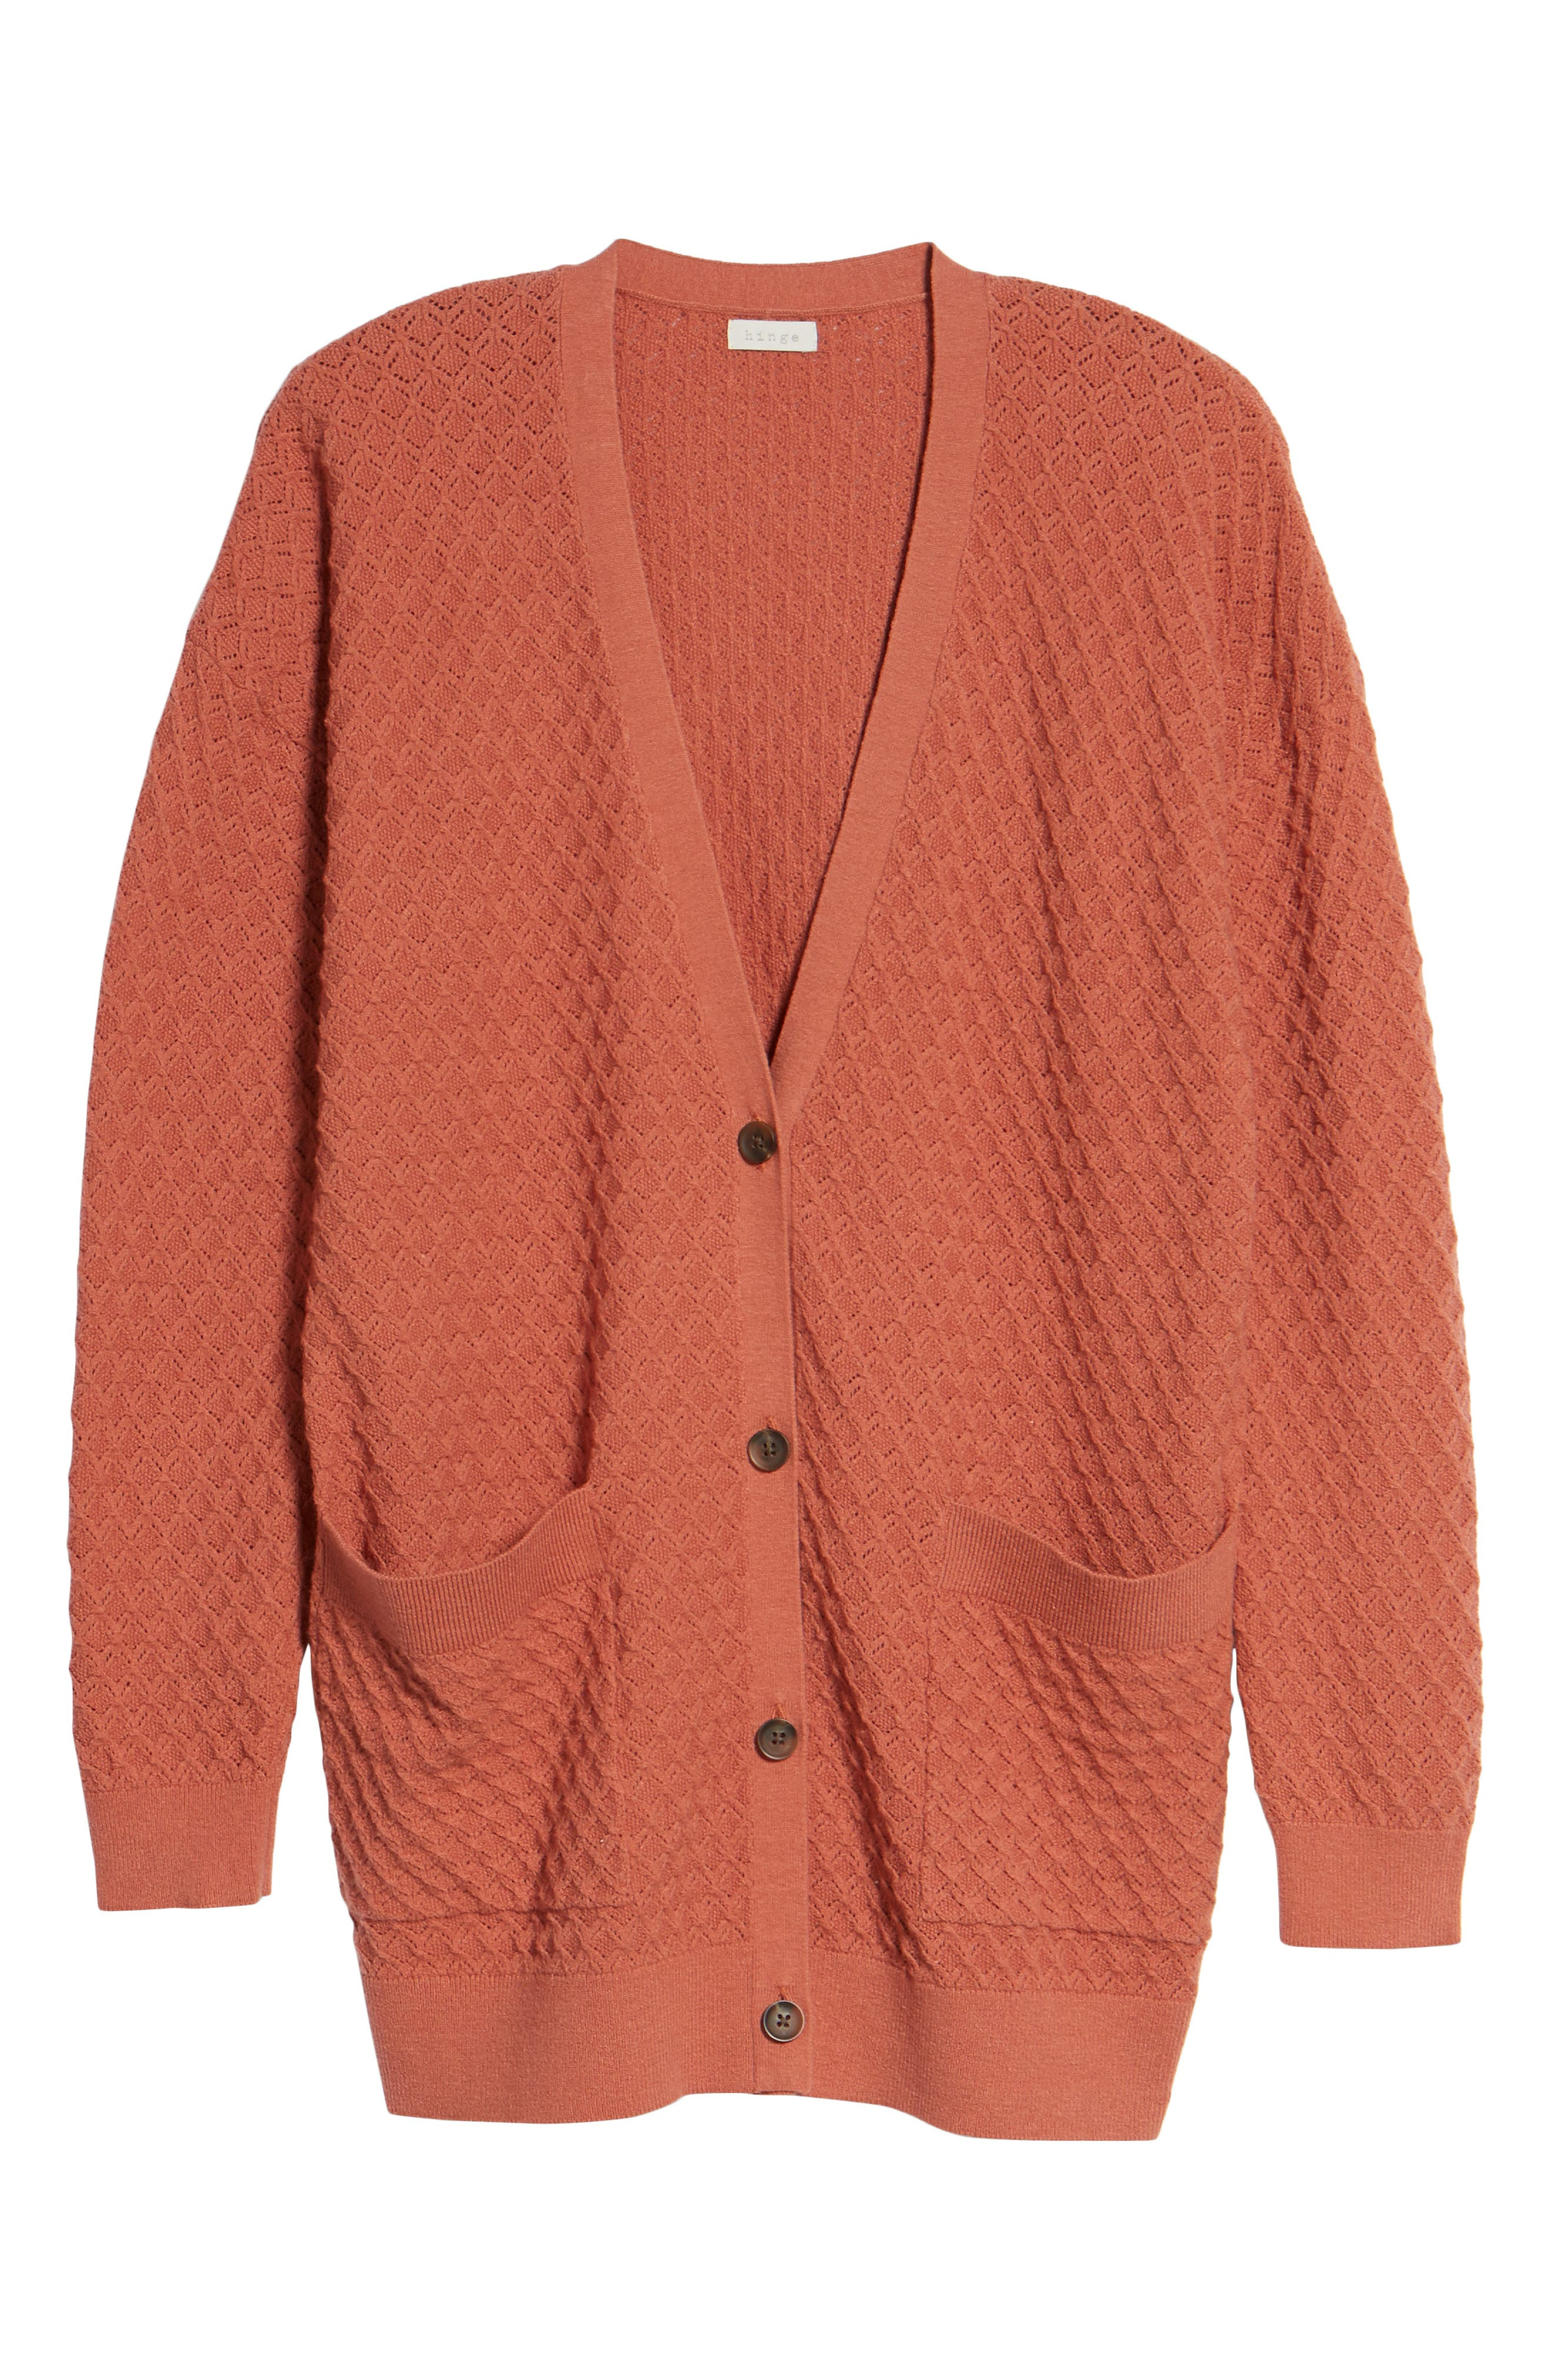 Pointelle Cardigan Sweater,                             Alternate thumbnail 24, color,